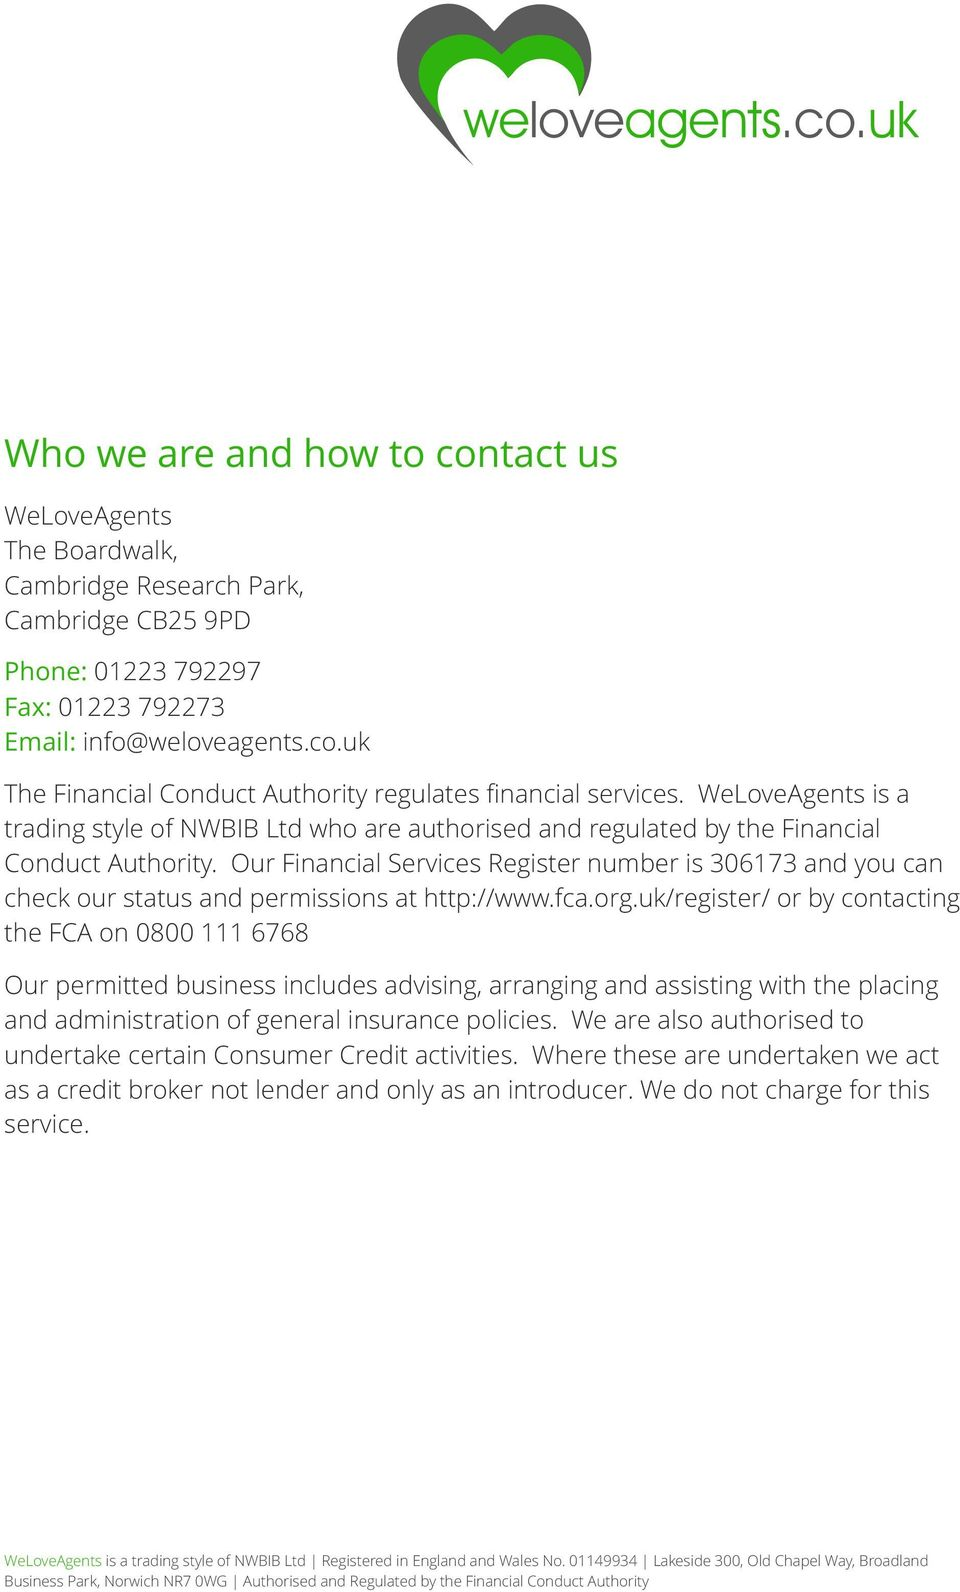 Our Financial Services Register number is 306173 and you can check our status and permissions at http://www.fca.org.